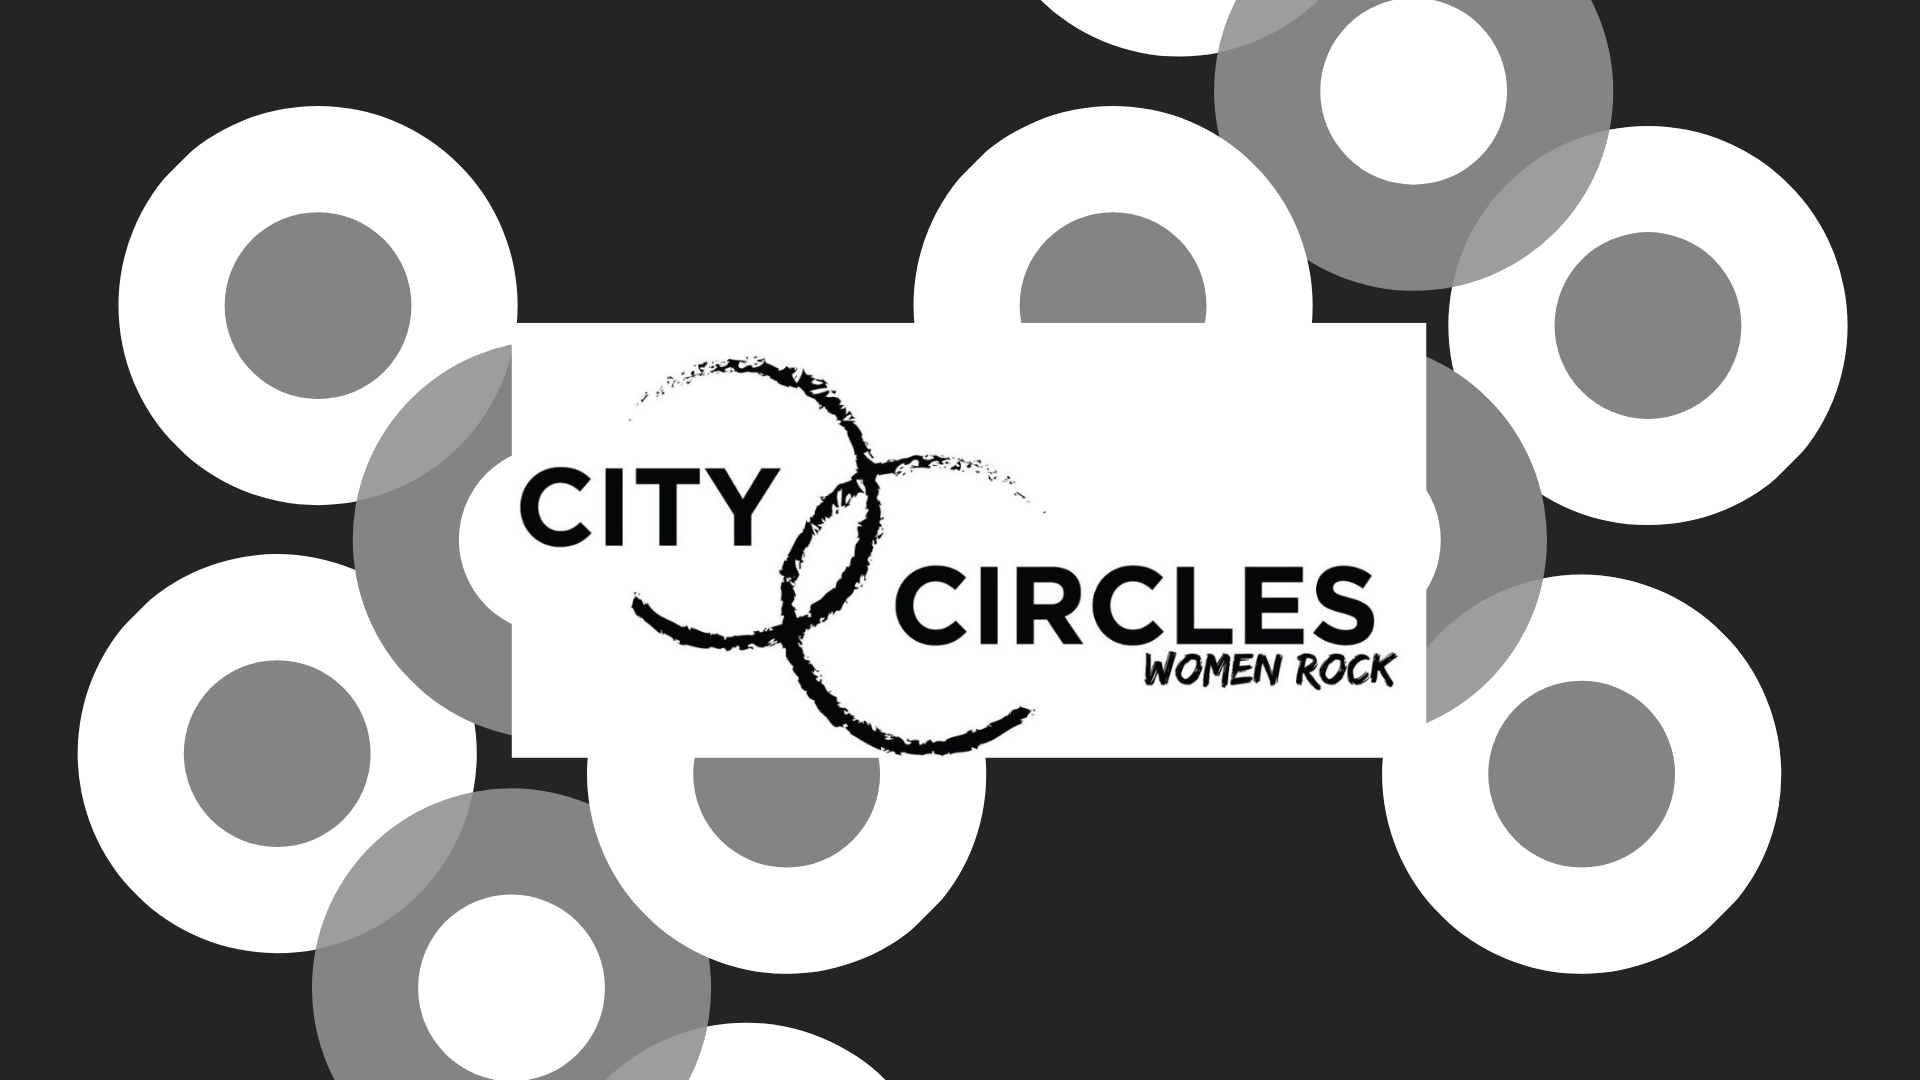 Women Rock's City Circles